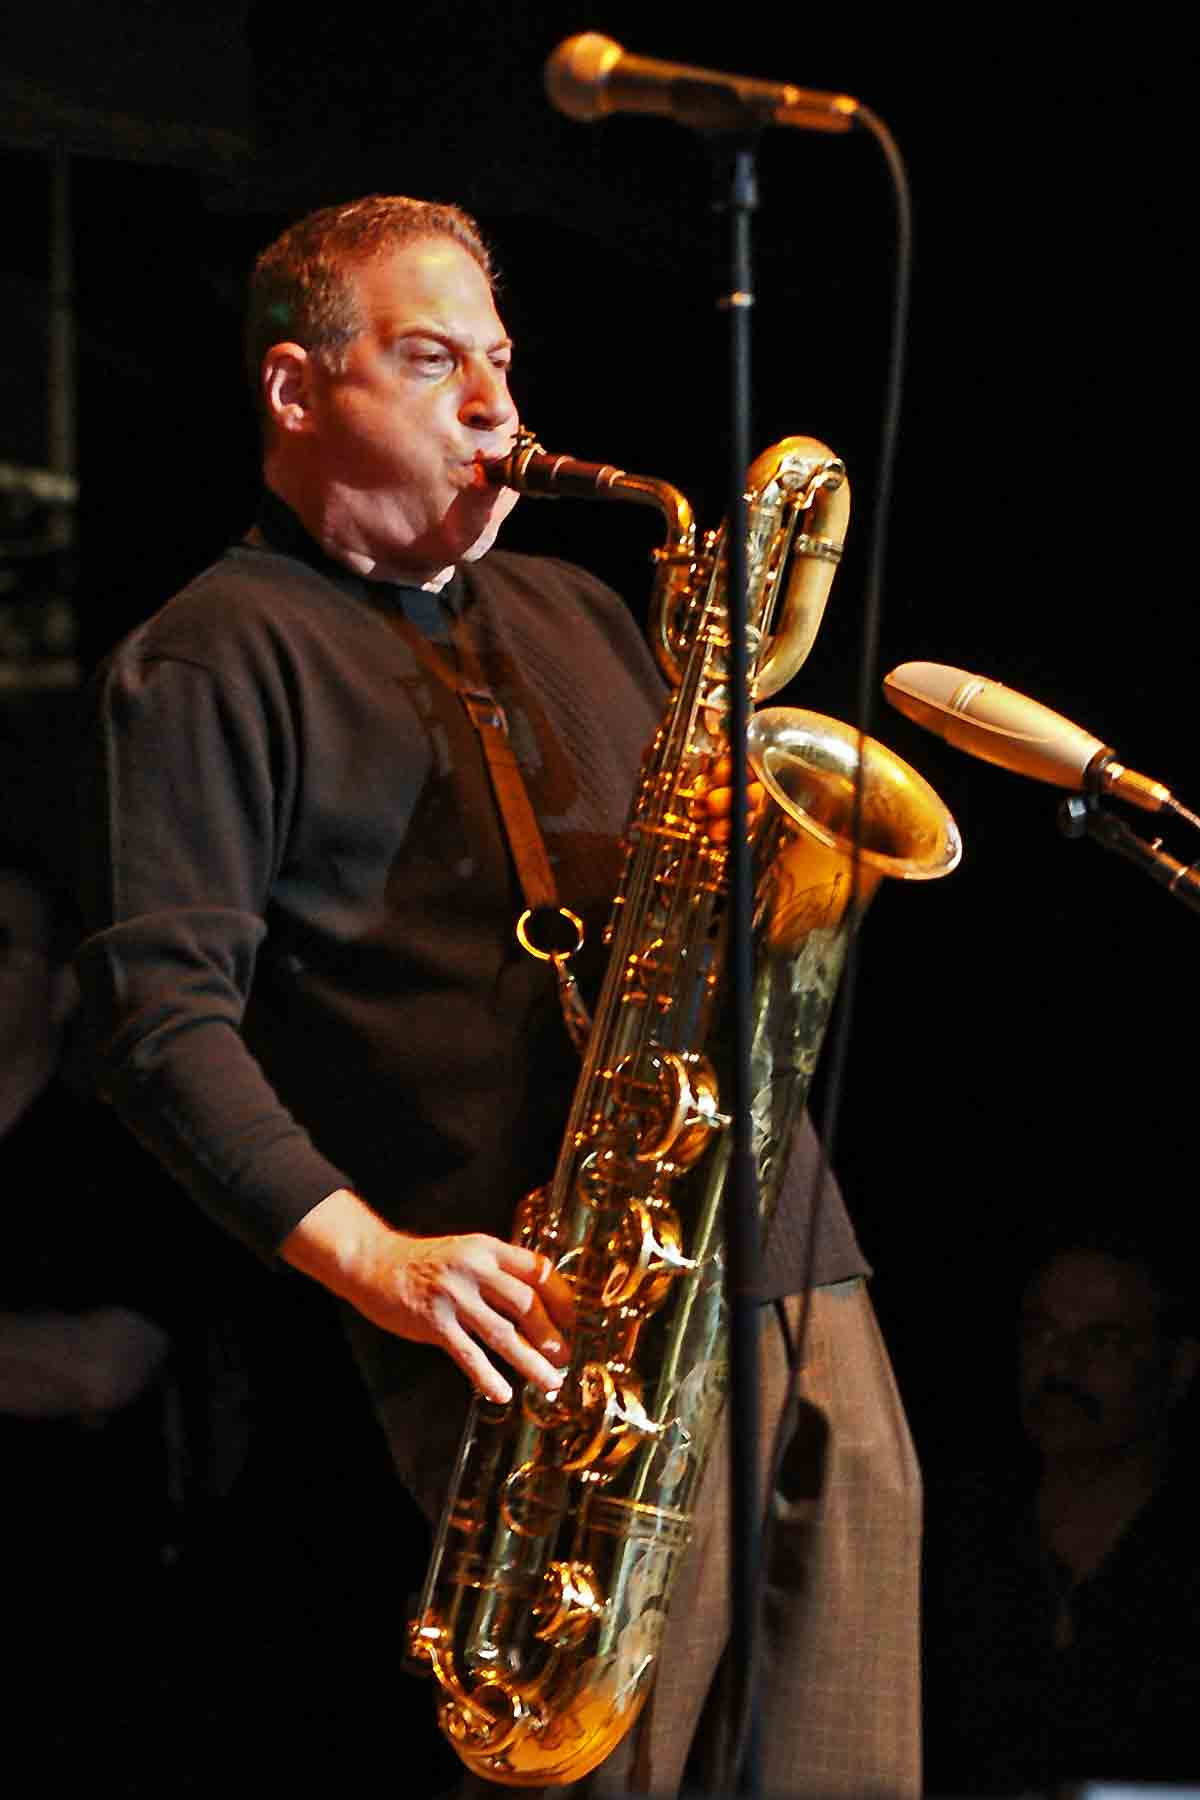 Mitch Frohman of the Spanish Harlem Orchestra